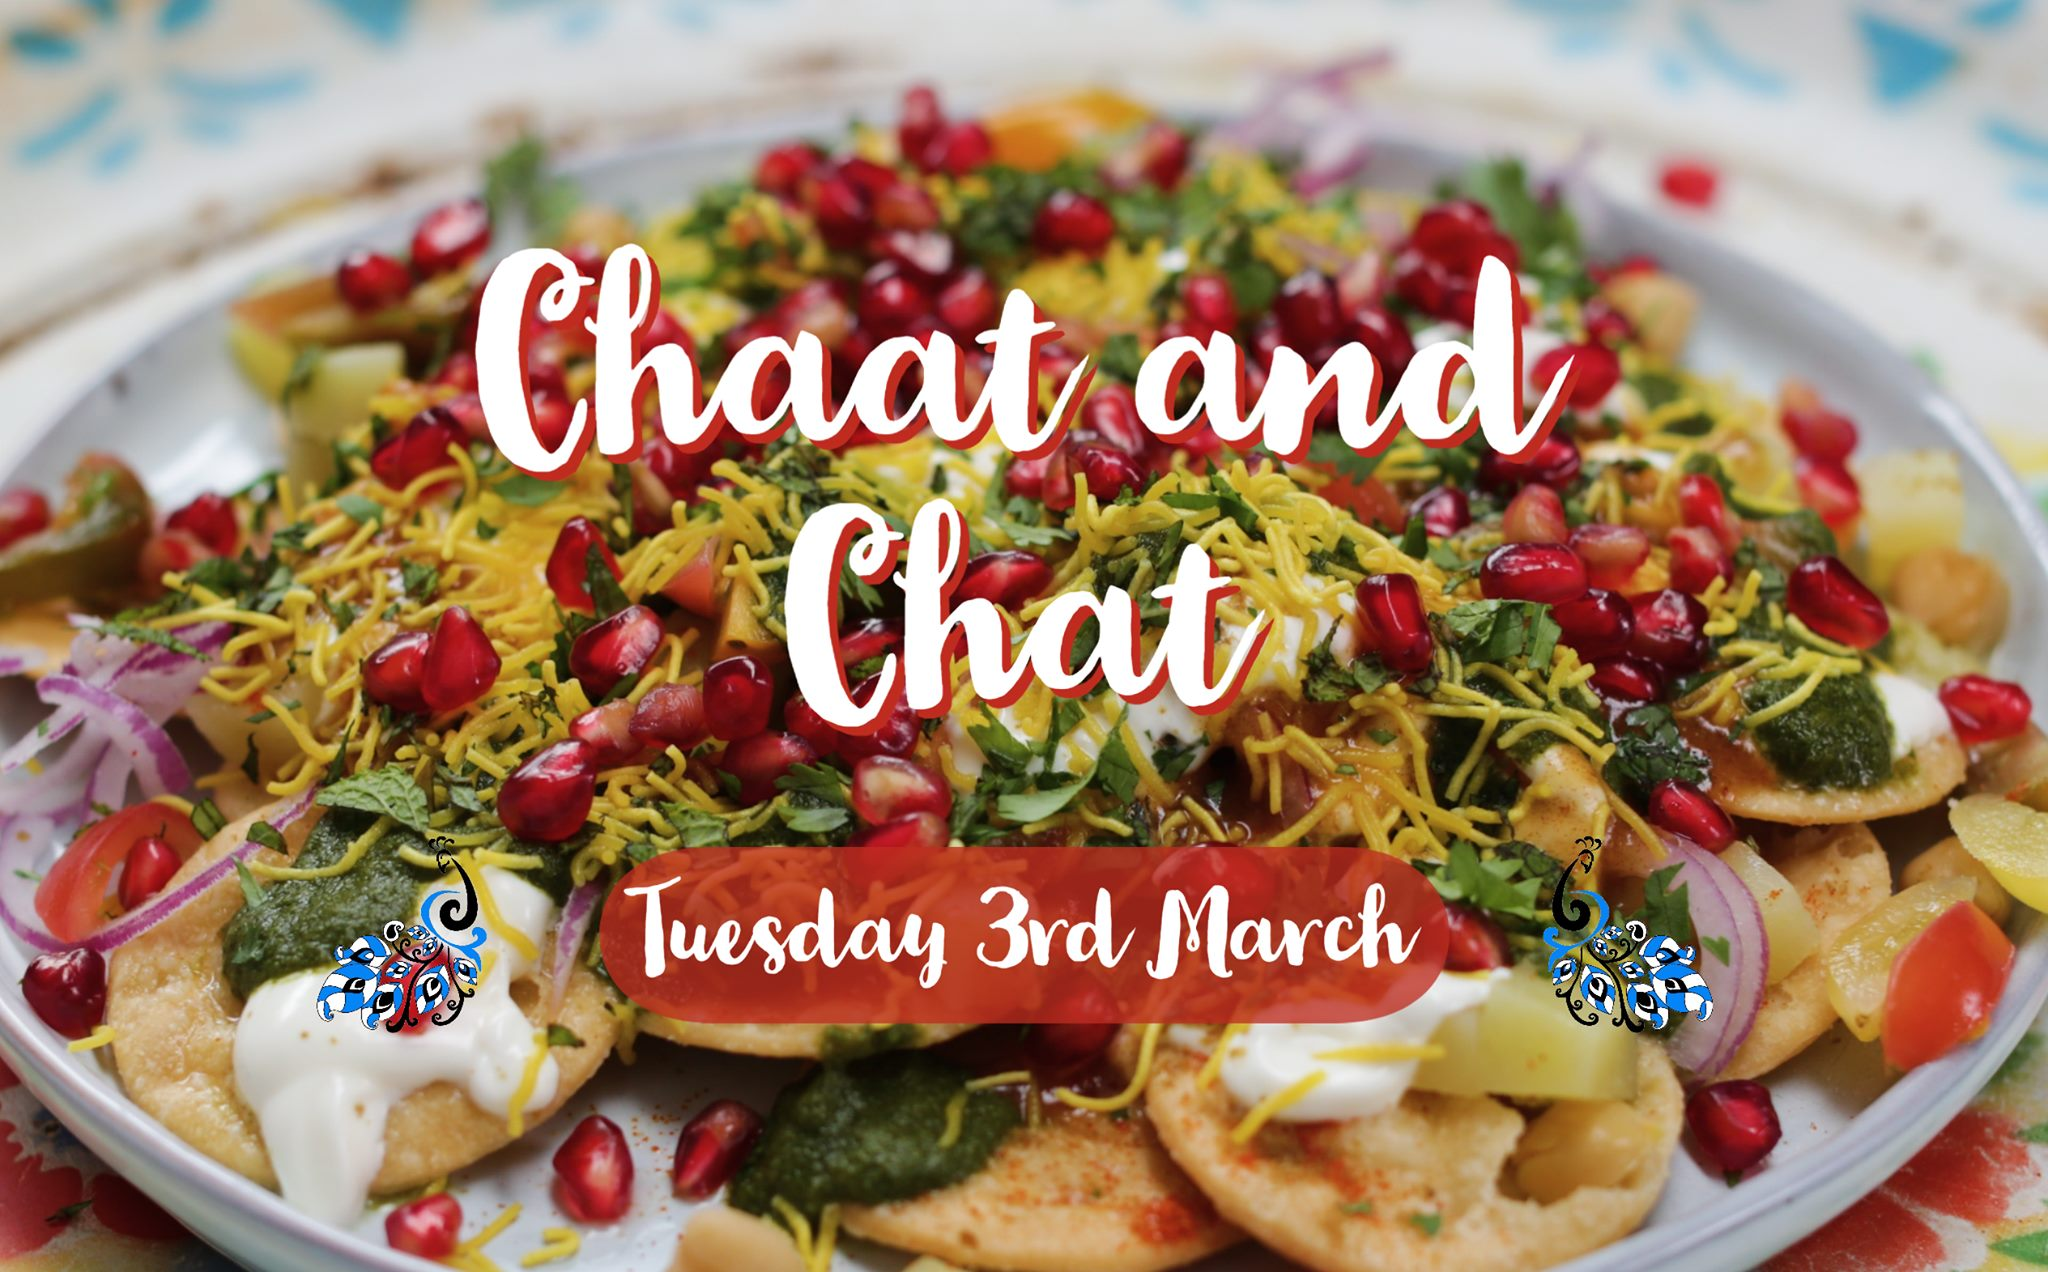 Chaat and Chat